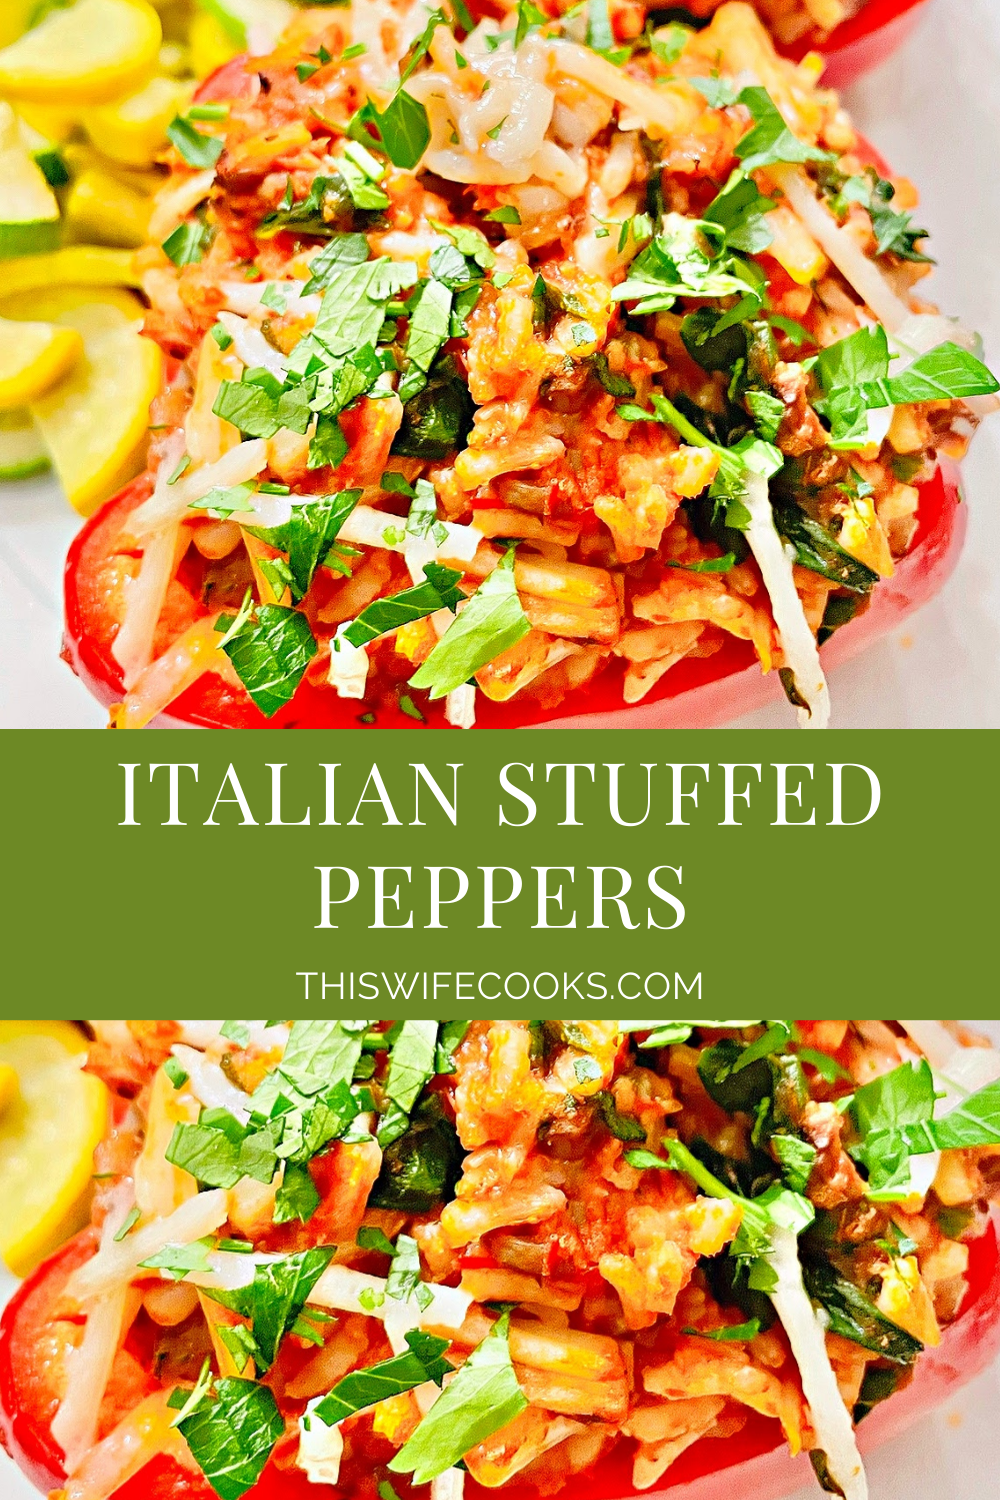 Italian Stuffed Peppers ~Colorful bell peppers stuffed with a saucy mixture of rice, spinach, mushrooms, and vegan mozzarella for a delicious twist on the classic! These peppers are easy to make and ready to serve in about an hour. via @thiswifecooks